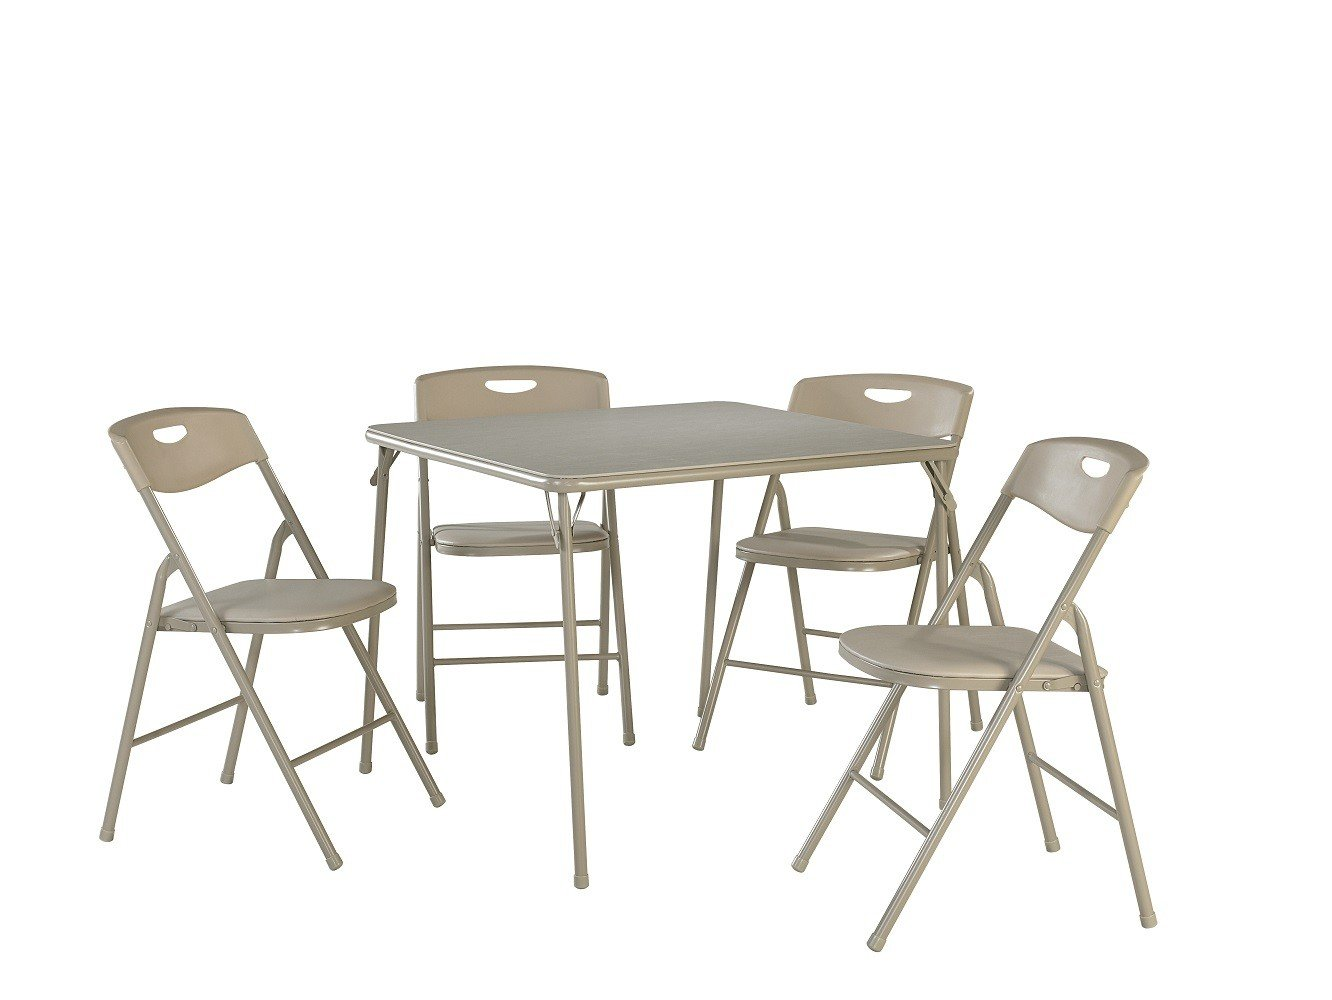 Amazon.com: Cosco 5-Piece Folding Table and Chair Set, Antique Linen ...